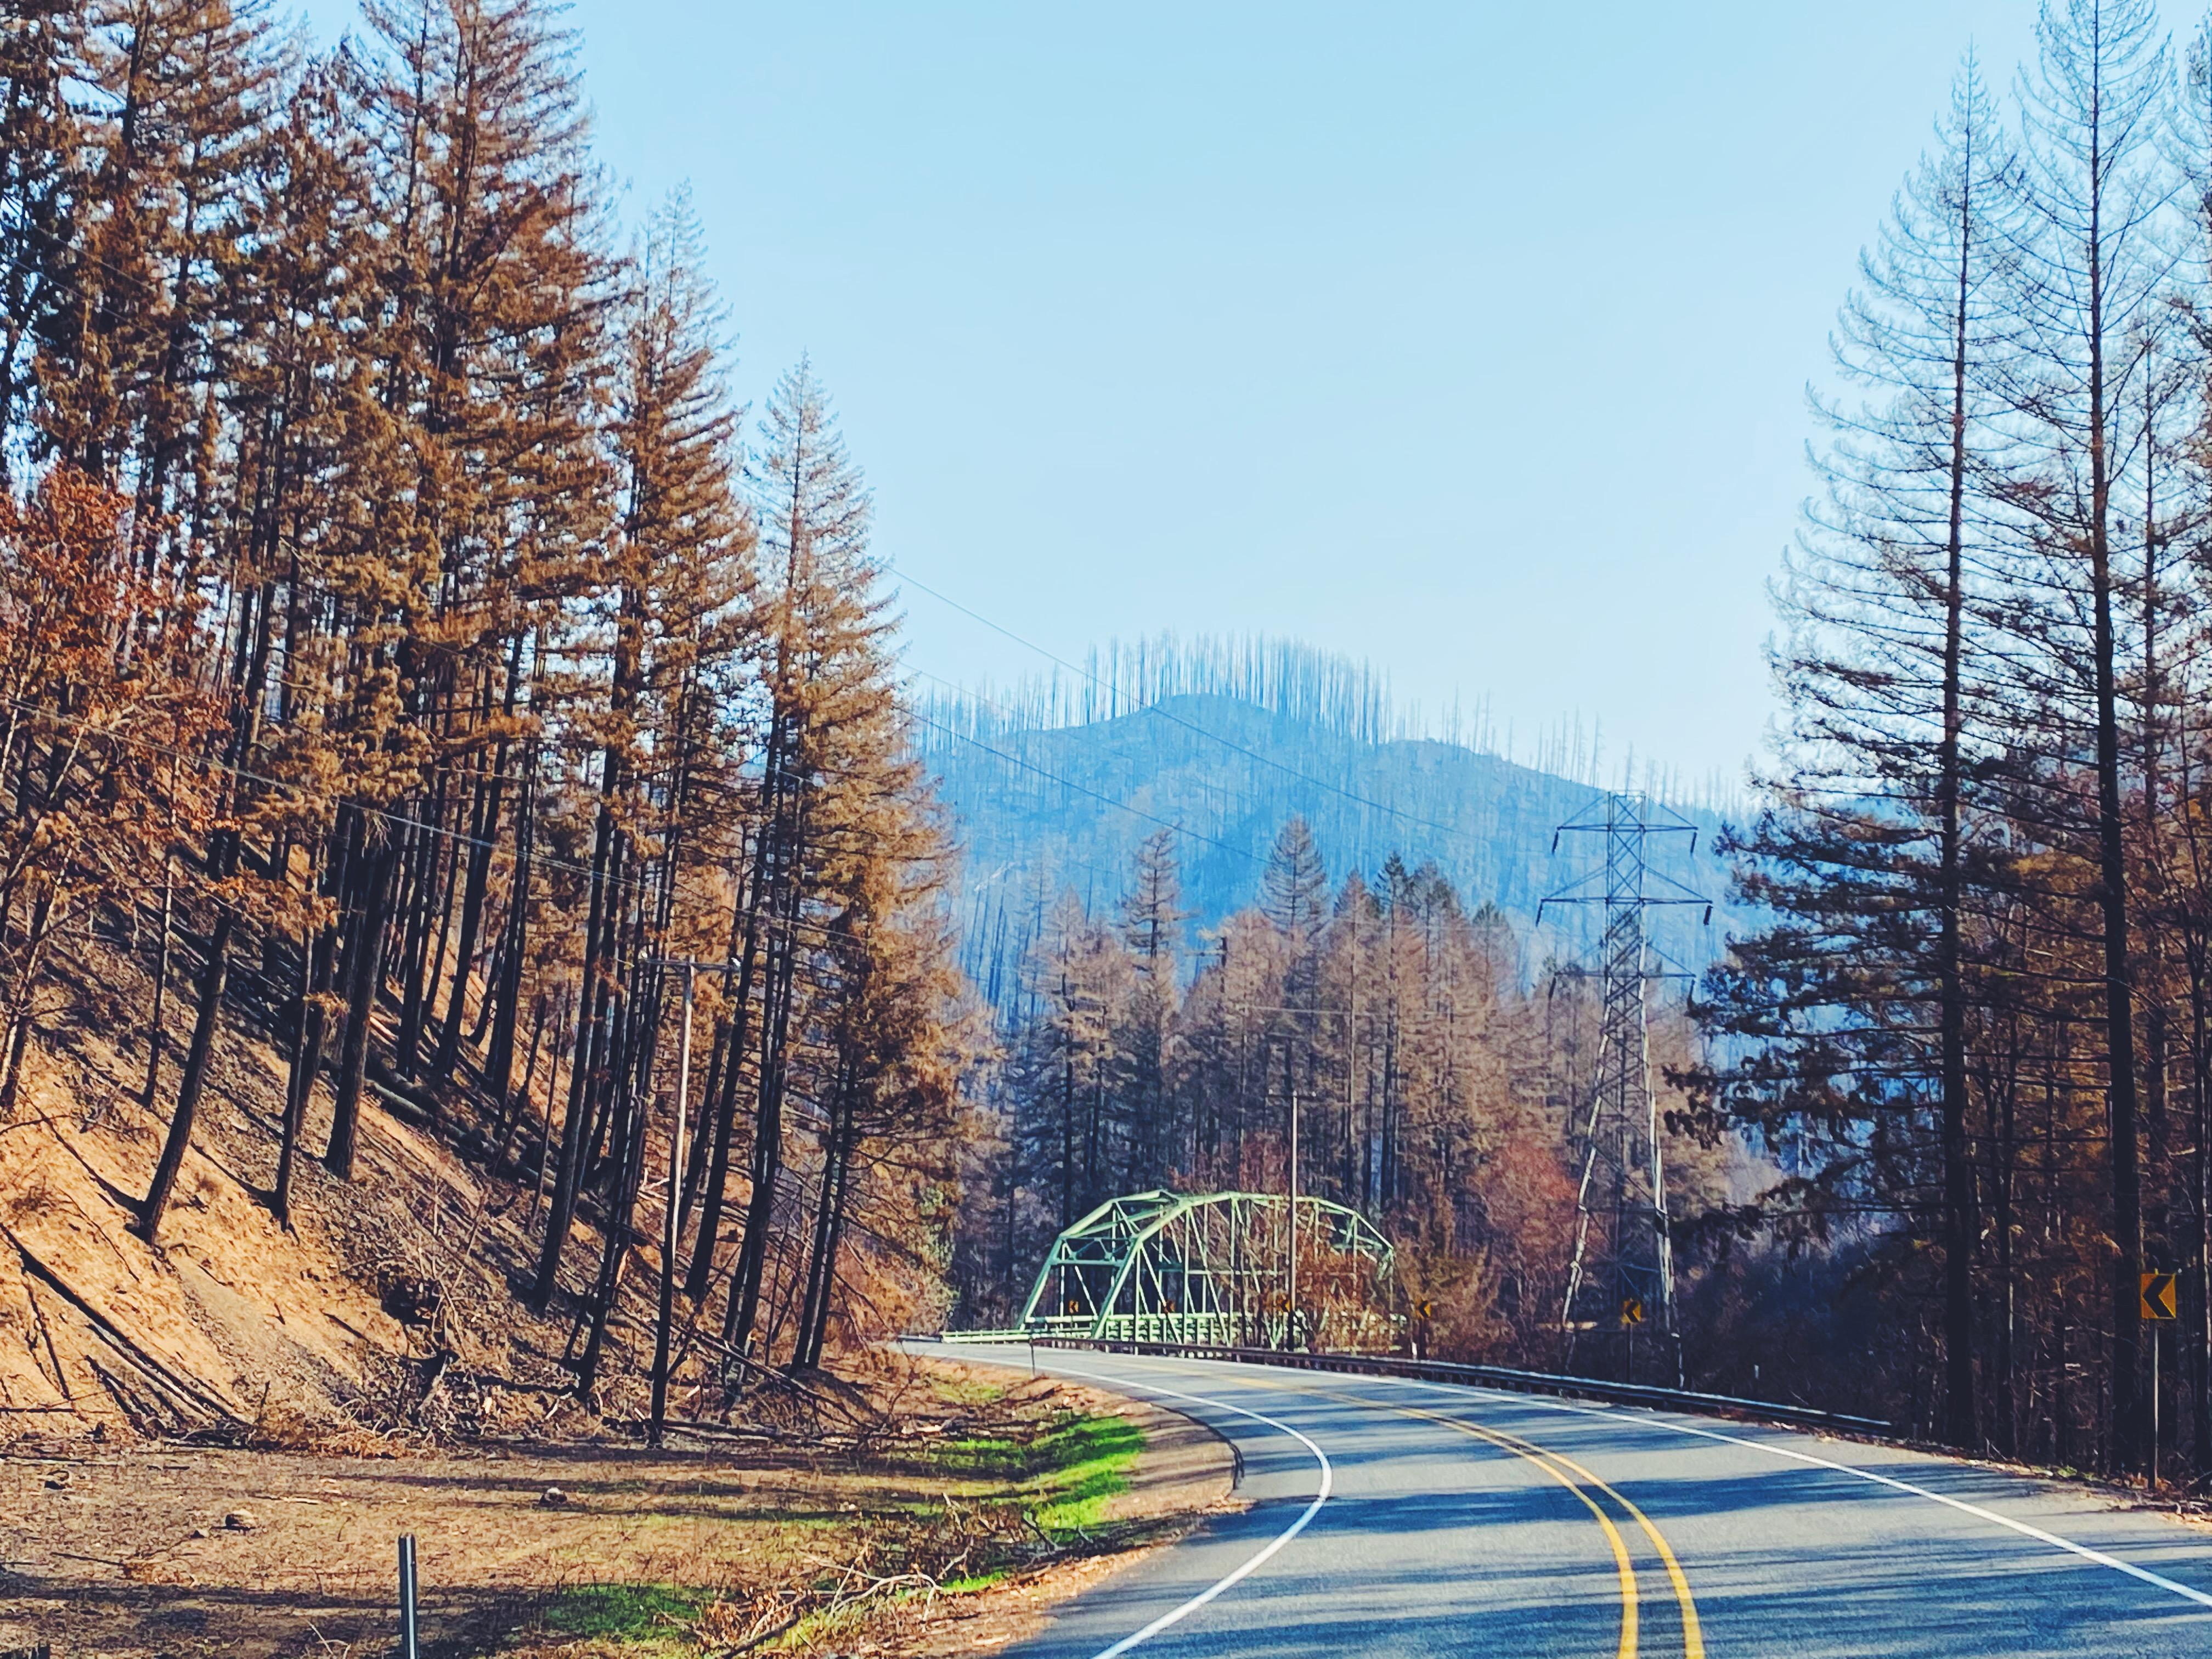 View of the Fish Creek Bridge from Hwy 224.